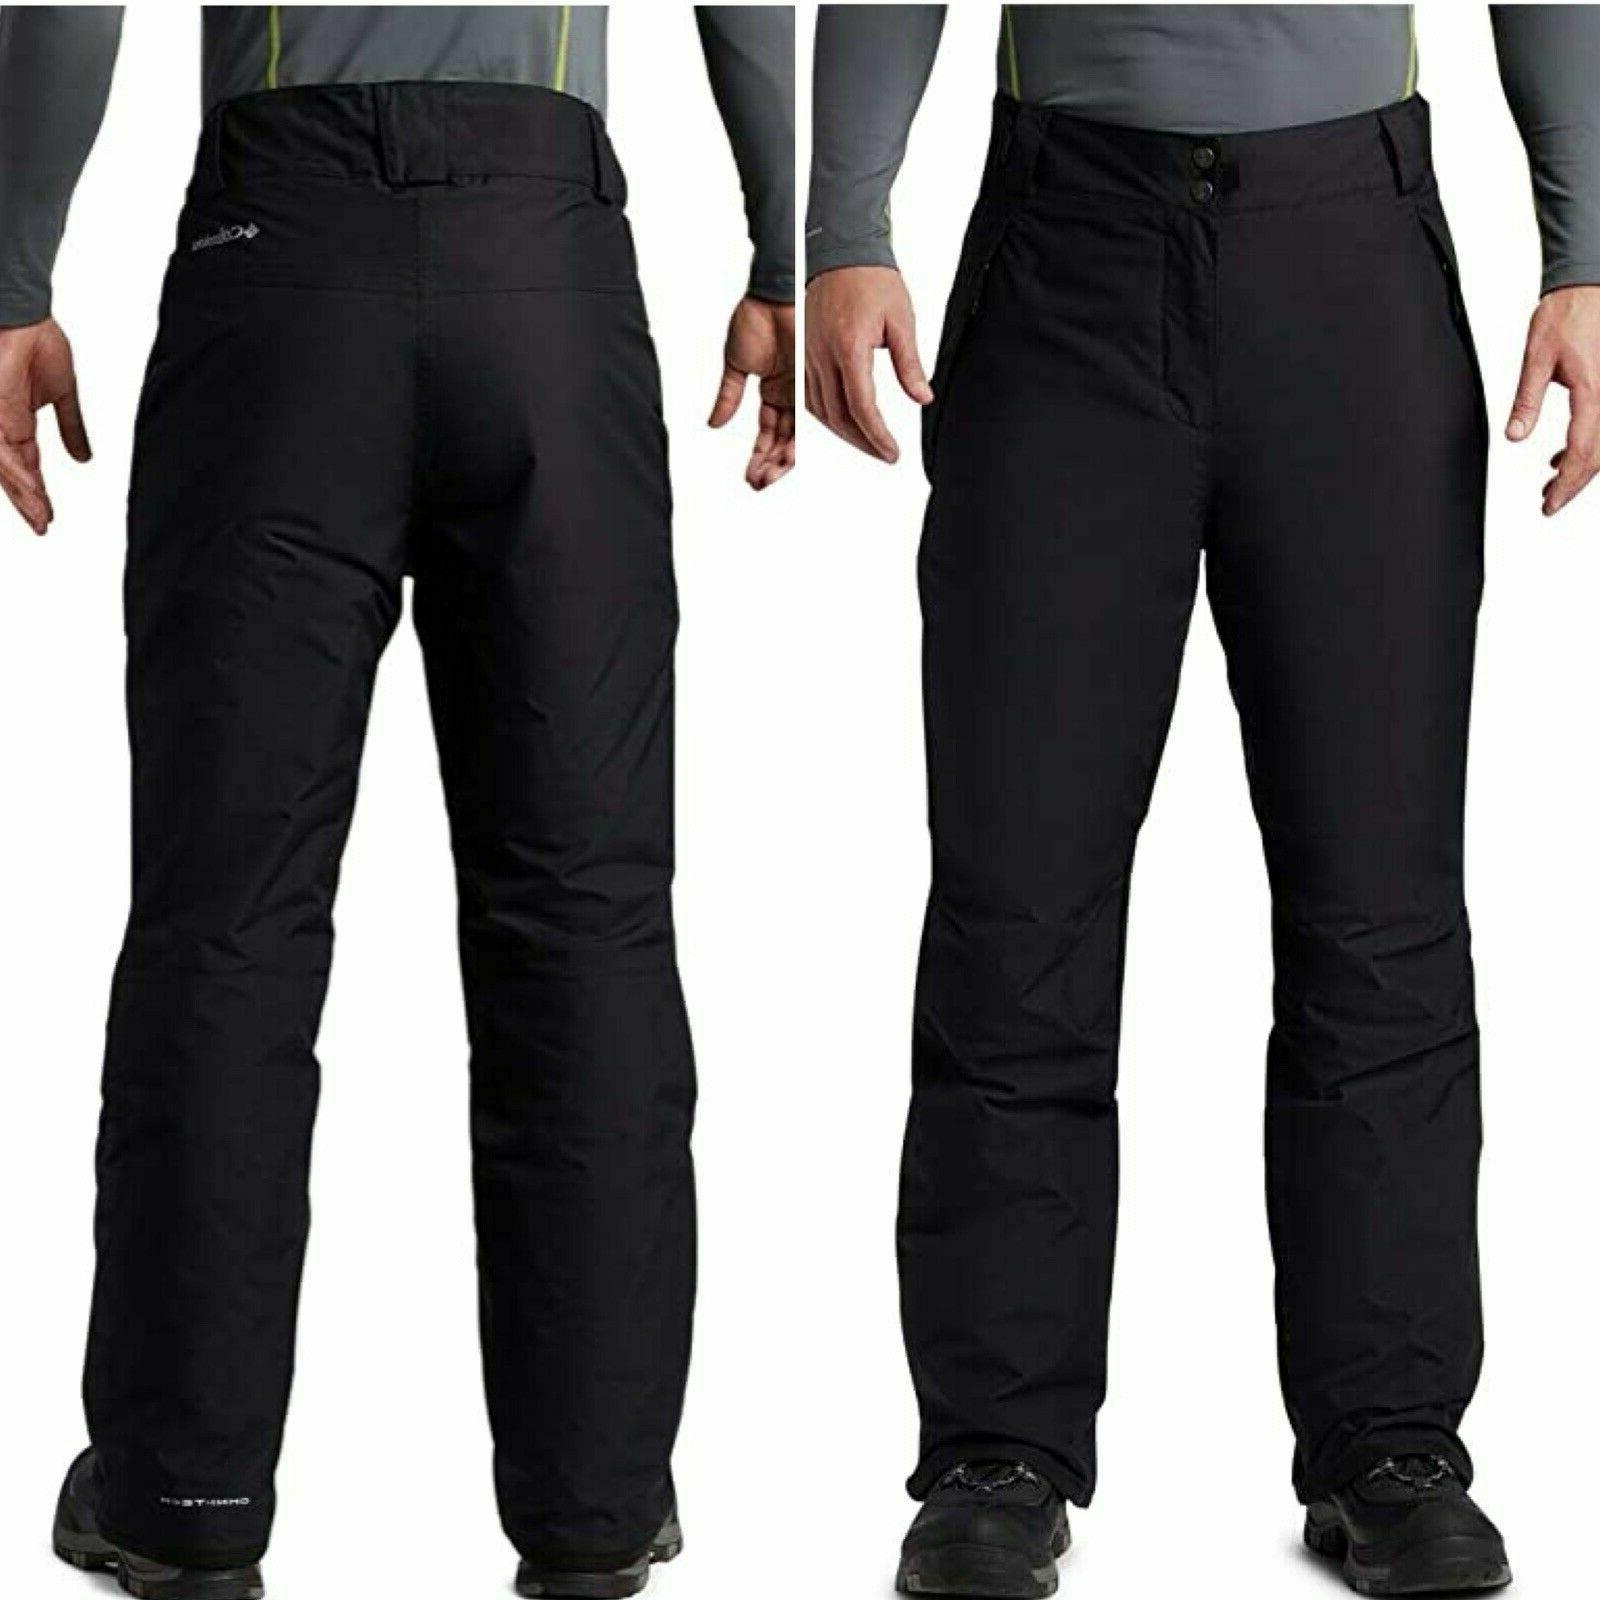 ride on snow pants men s 2x